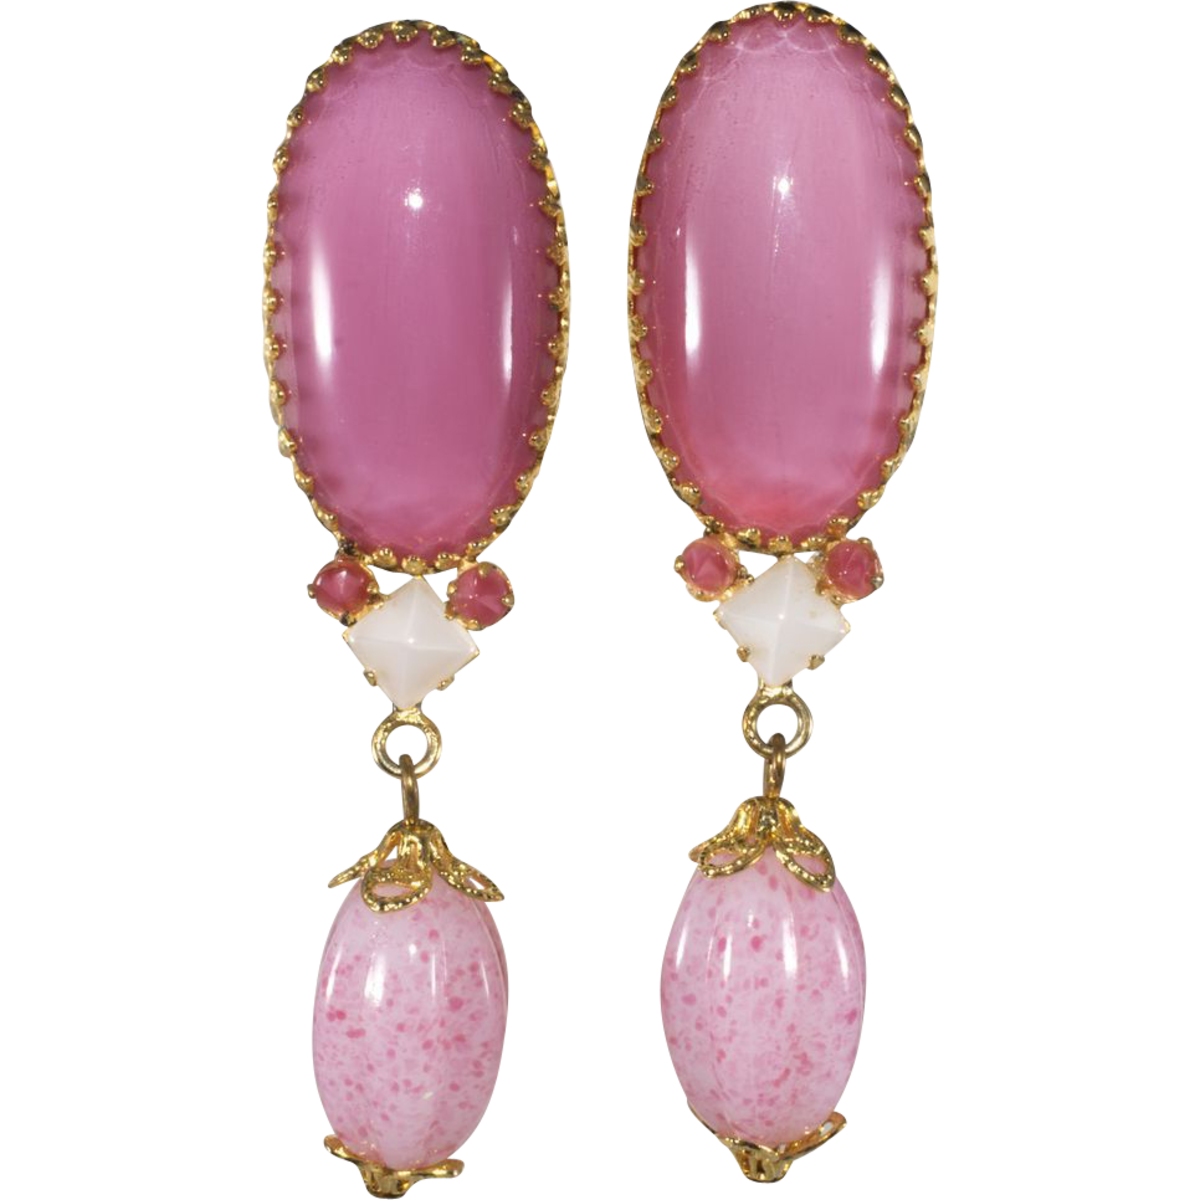 Schreiner drop earrings with large oval stones.